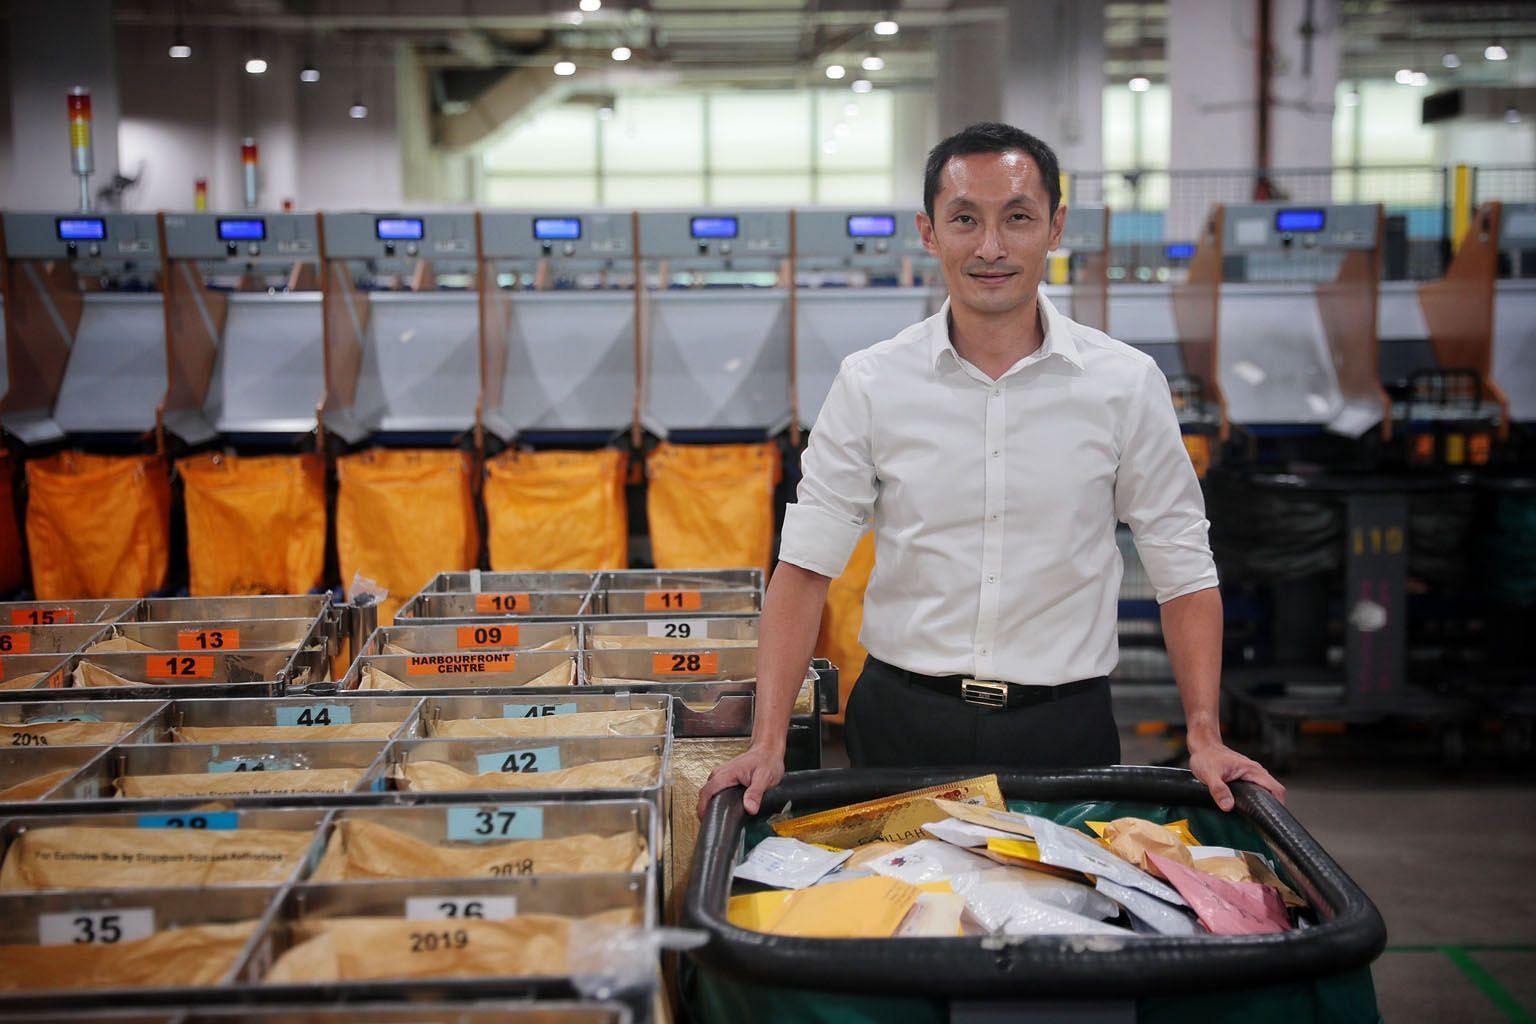 Postmaster-general Vincent Phang wants to work with online sellers amid a boom in e-commerce triggered by the pandemic. PHOTO: JASON QUAH